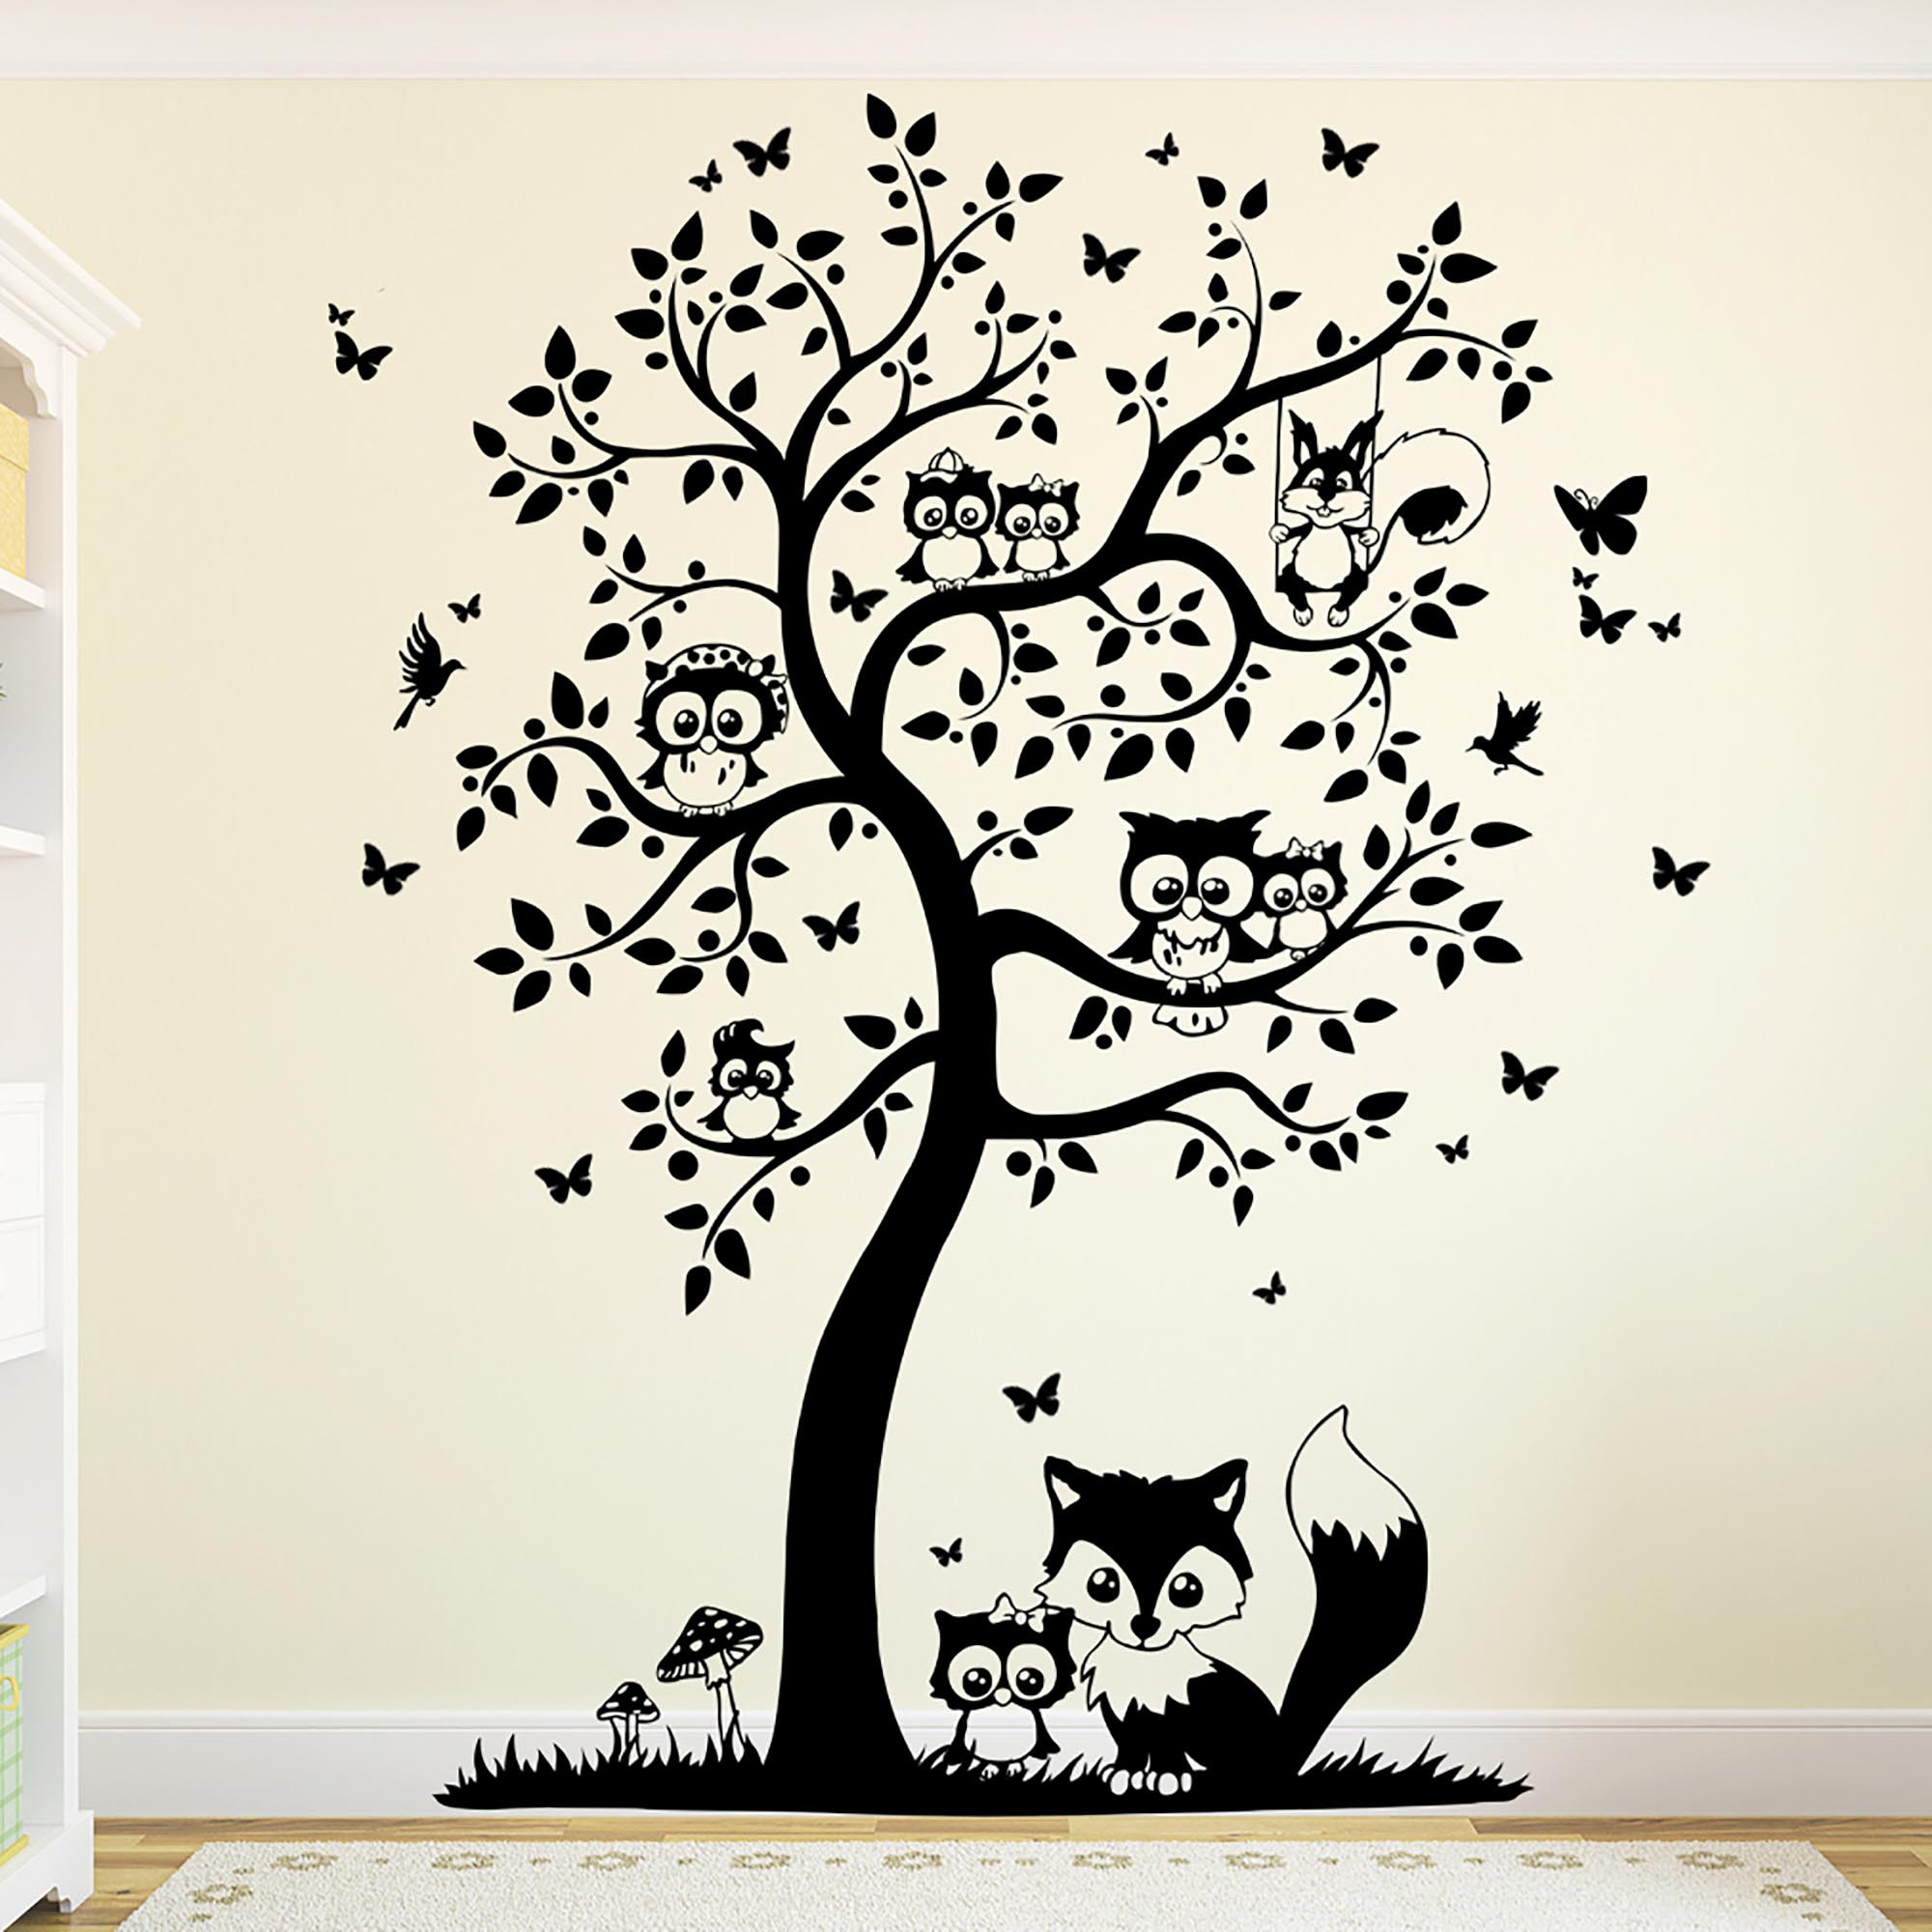 wandtattoo baum mit eulen eulenbaum eule m1542 wandtattoos elfent r tassen. Black Bedroom Furniture Sets. Home Design Ideas